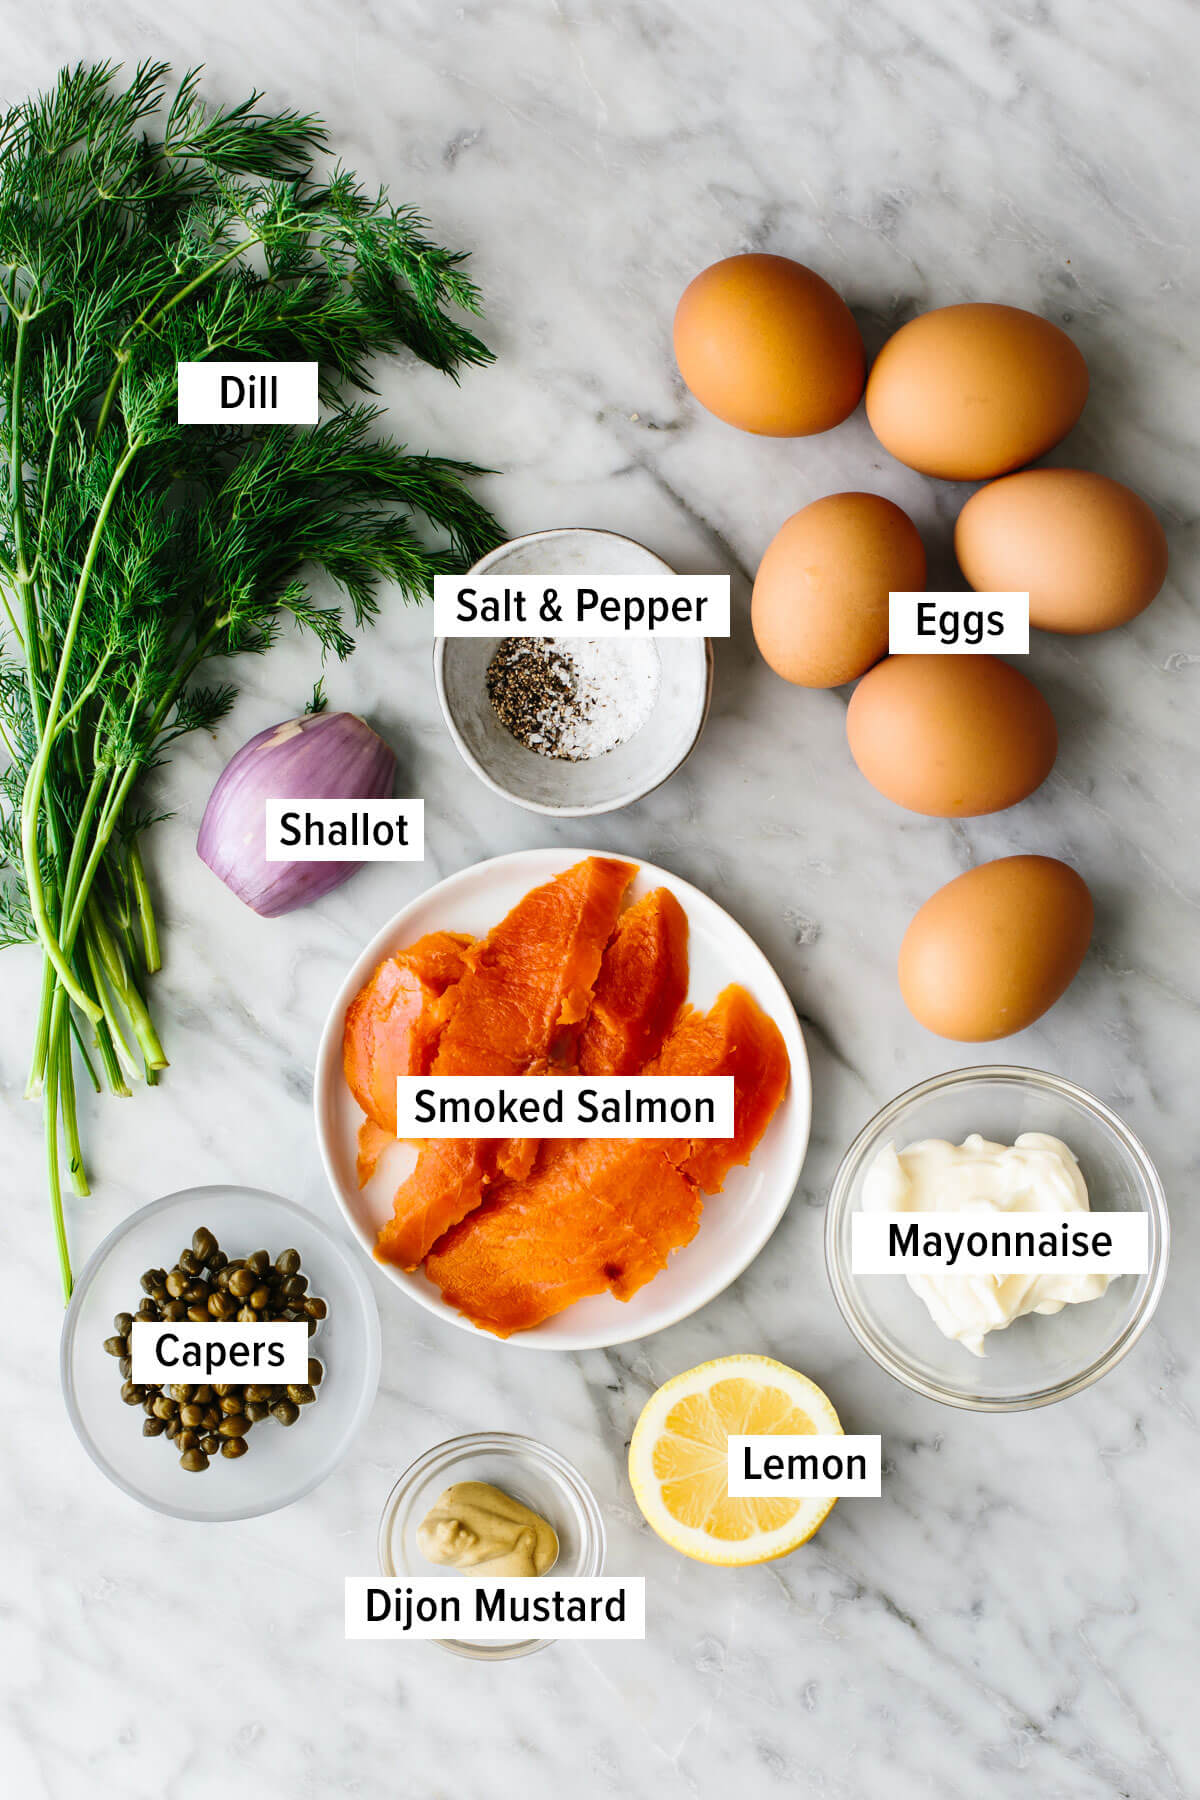 Ingredients for smoked salmon deviled eggs on a table.